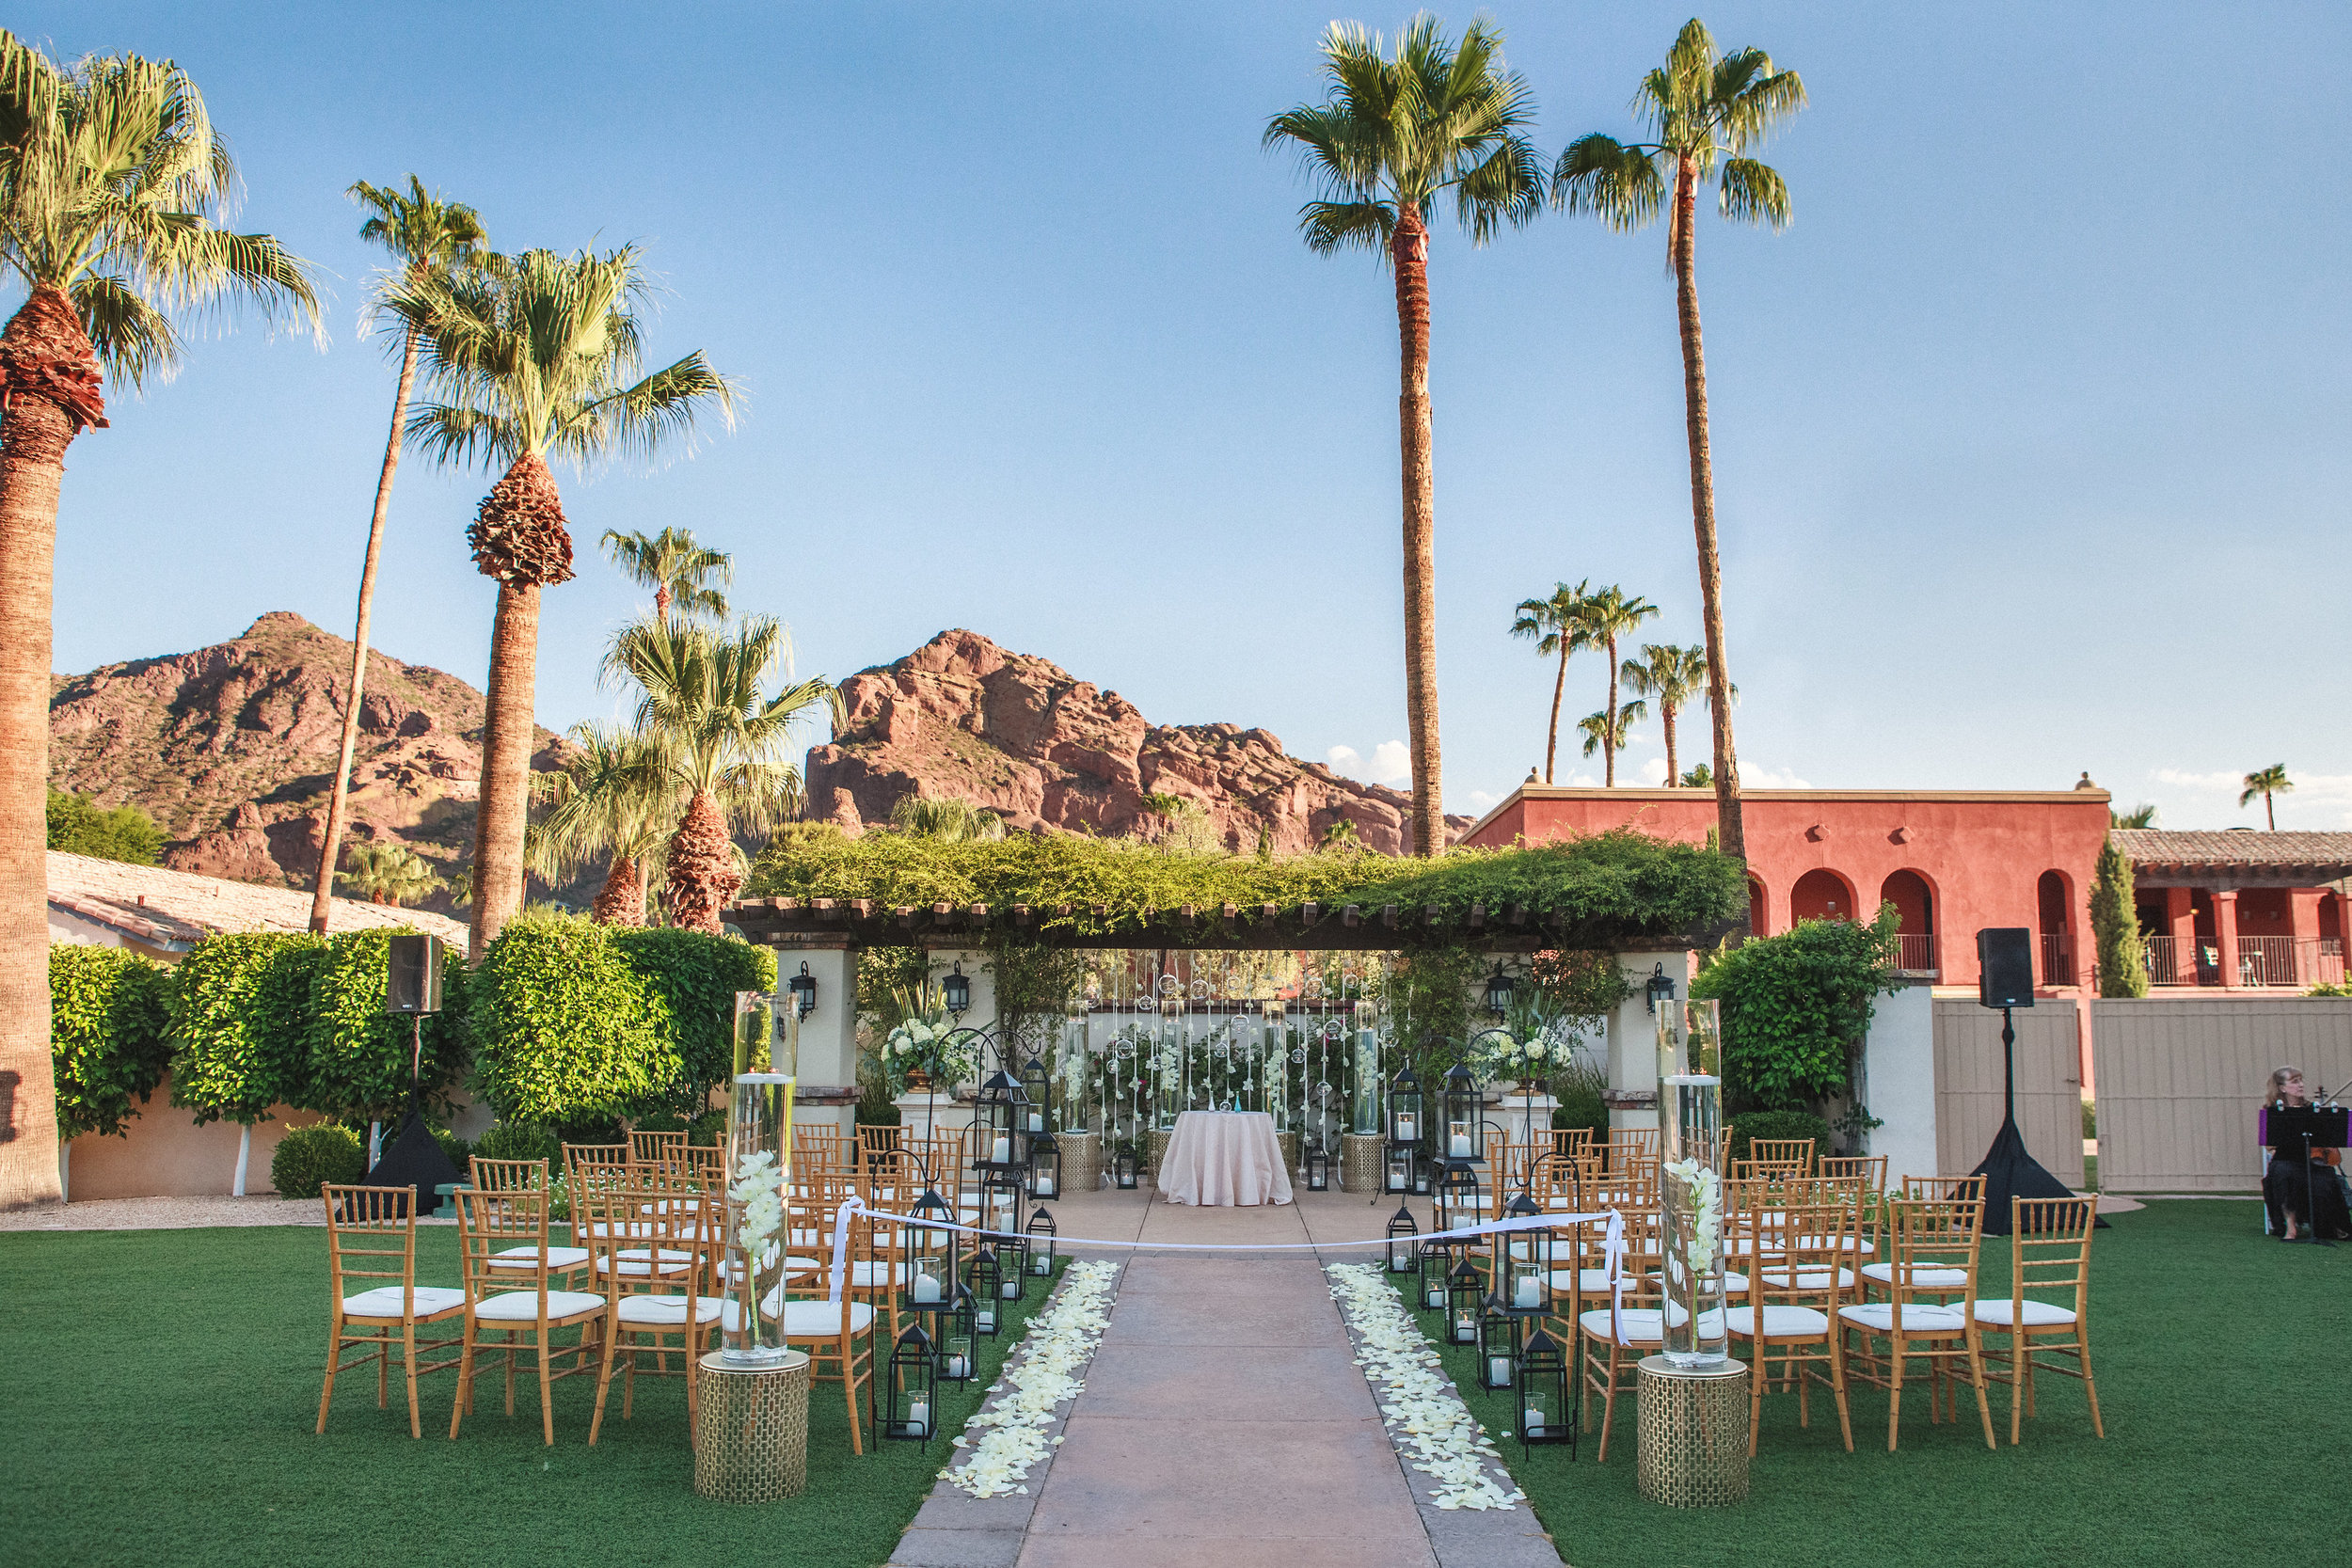 arizona wedding planner scottsdale wedding coordinator destination wedding desert wedding invitation garden  ceremony flowers